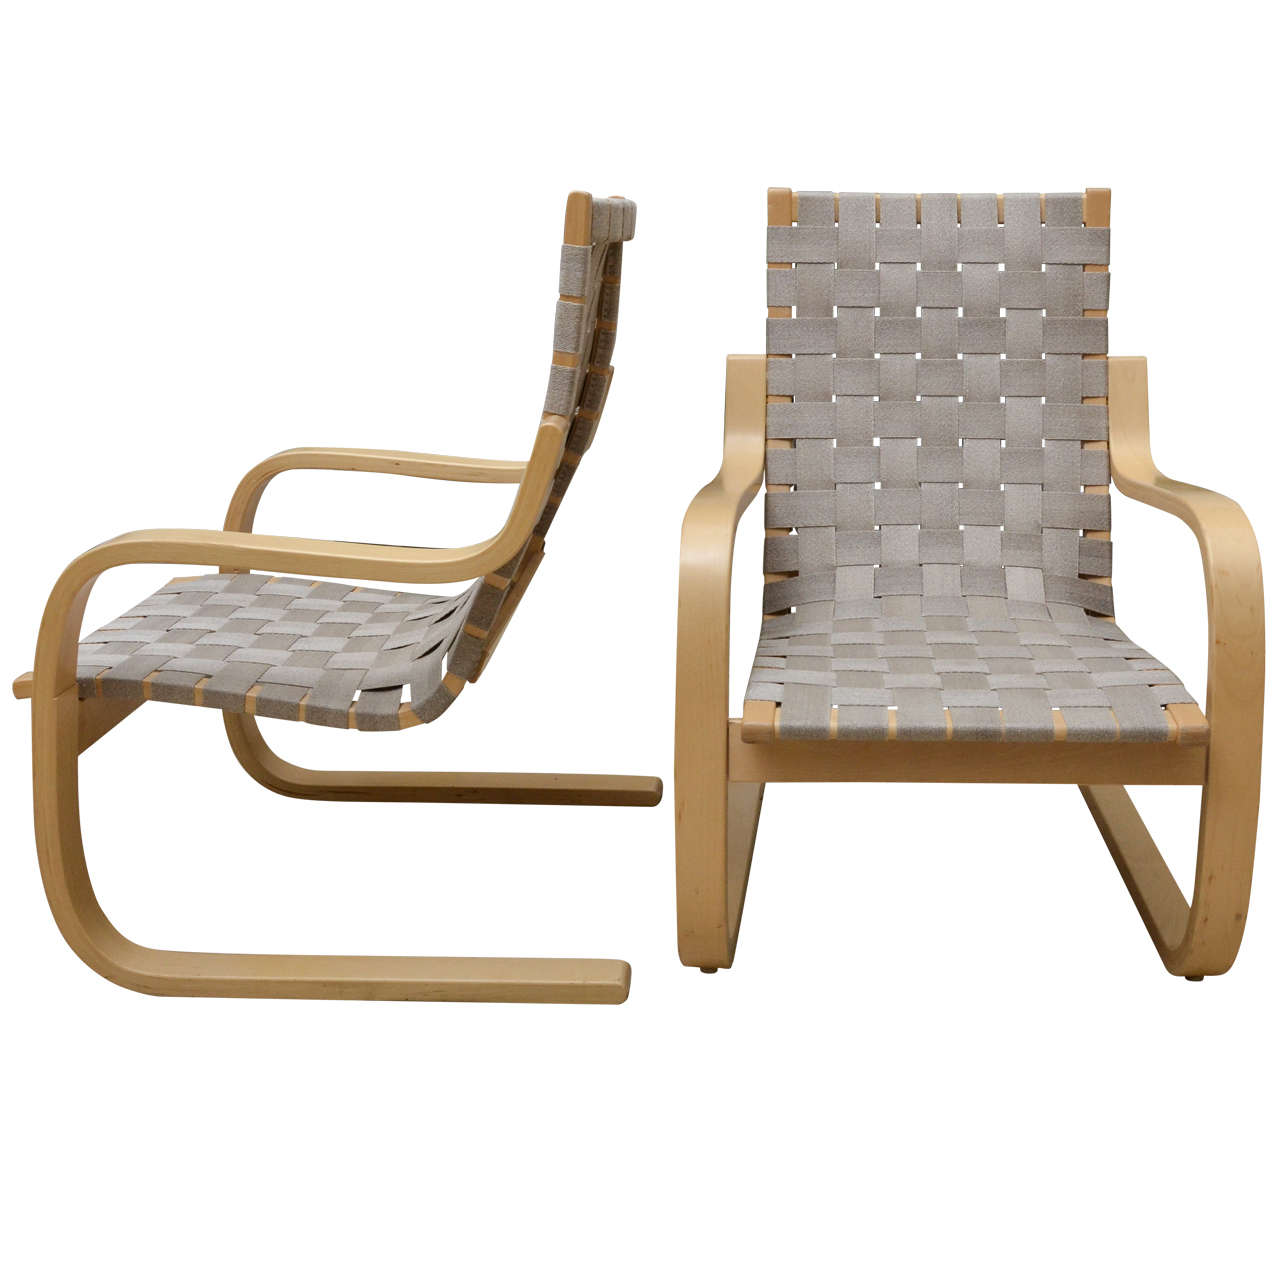 Pair of alvar aalto birch lounge chairs at 1stdibs for Alvar aalto chaise